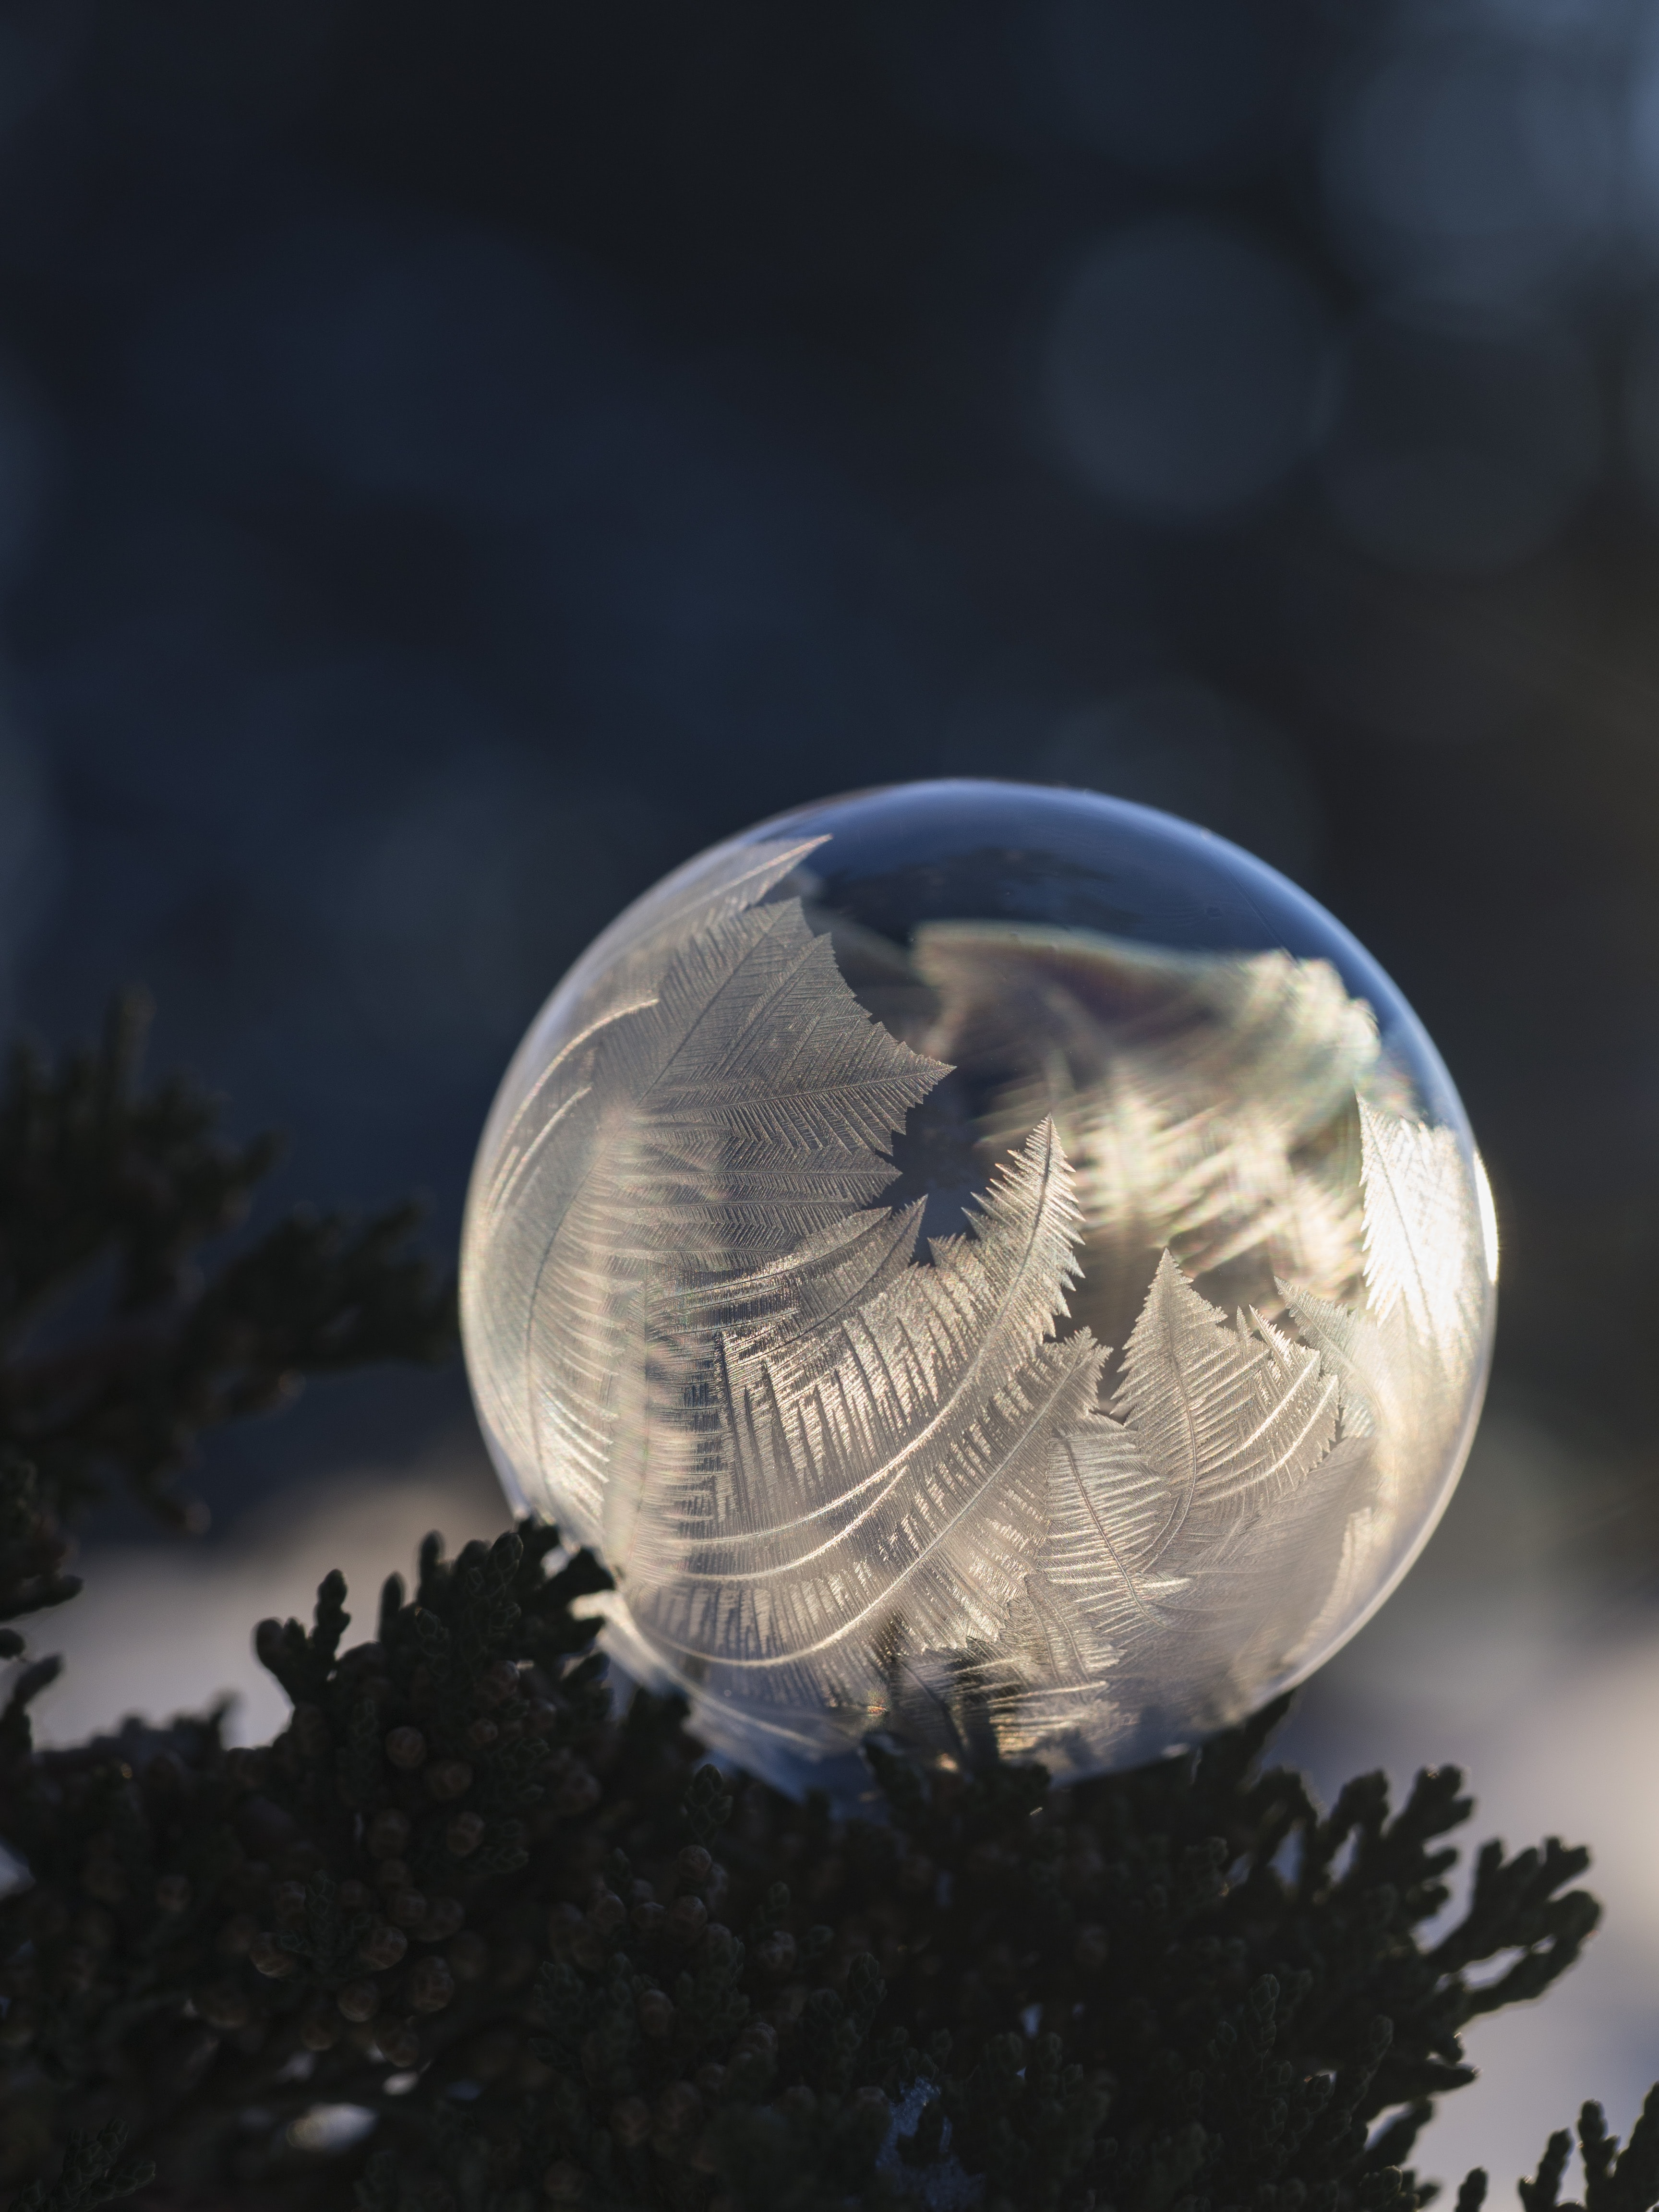 closeup photography of glass ball